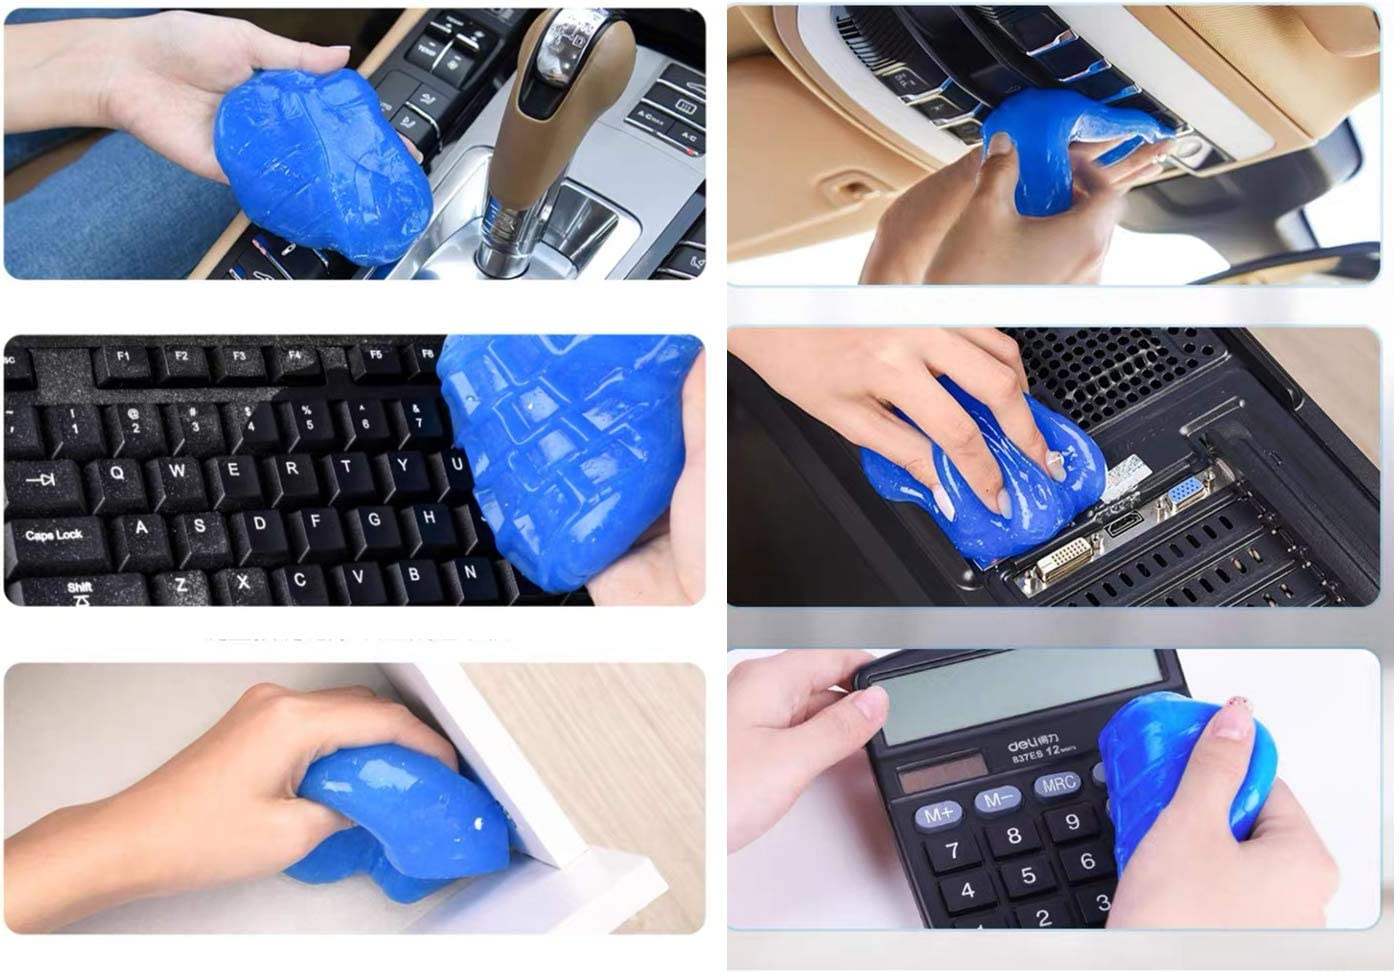 Cleaning Gel 160G, Dust Cleaning Mud for Car, Car Accessories, Keyboard Printers Cameras PC Tablet Laptop Airpods Case Cleaner